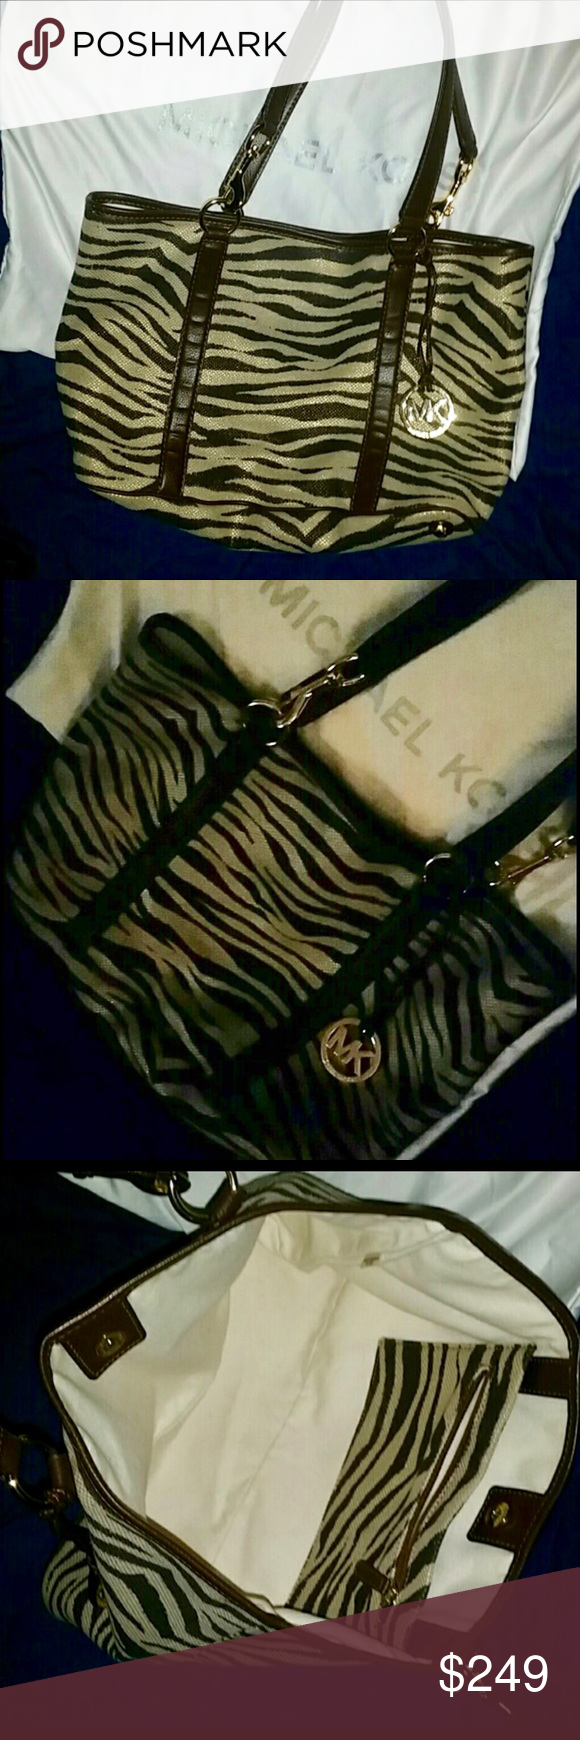 Huge Never Carried Michael Kors Tiger Jet Tote Gorgeous and exotic. Glorious Tiger signature MK Tote Bag with included pouchette and dust cover.  She is such a beauty. Show your fierce side with this classic bag with a twist.  Great gift idea. #MK Tiger print bag MICHAEL Michael Kors Bags Shoulder Bags